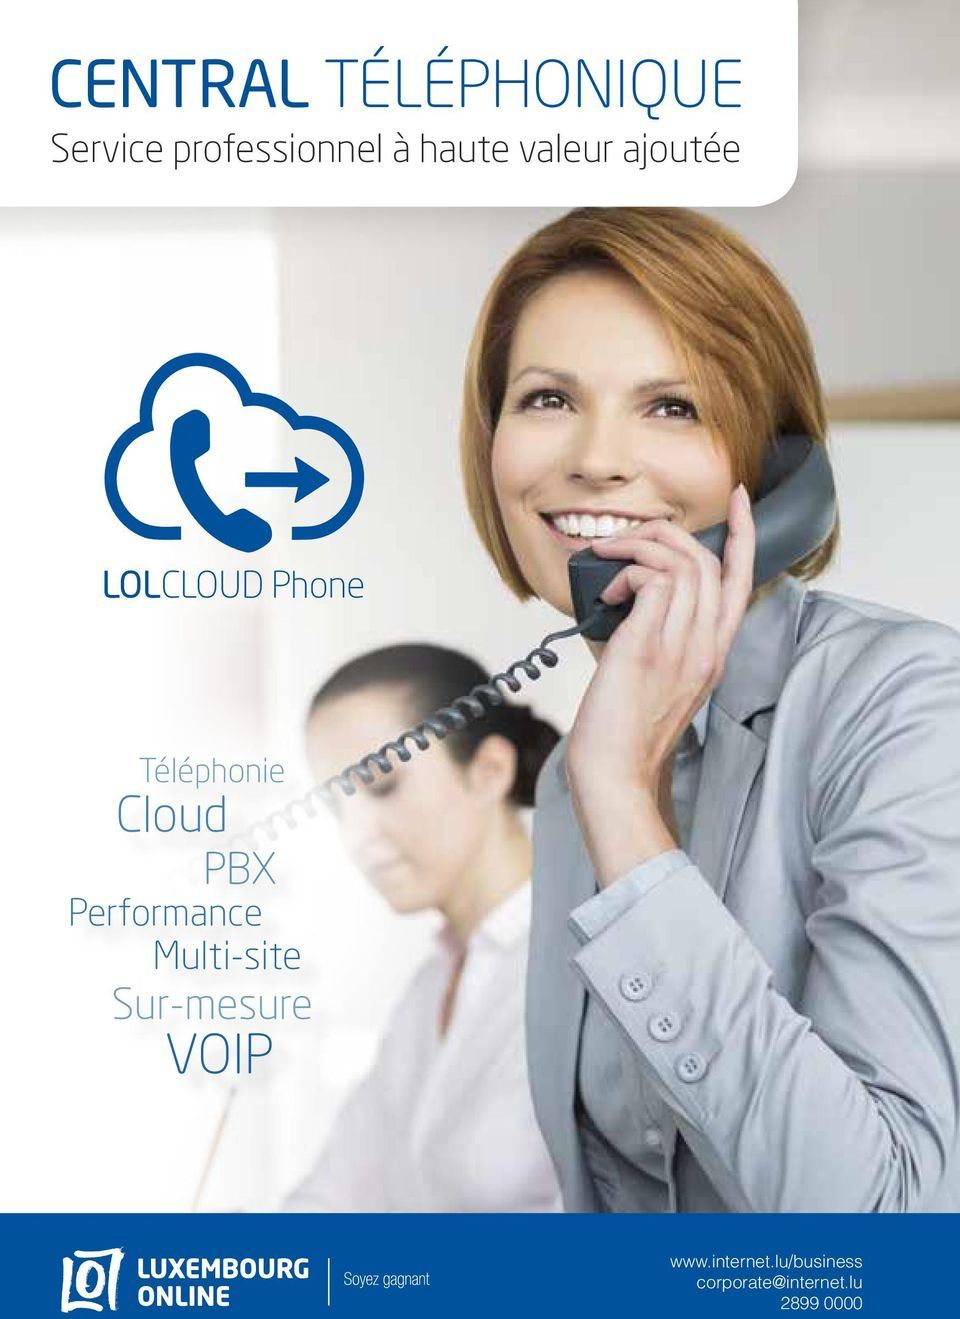 Cloud PBX Performance Multi-site Sur-mesure VoIP